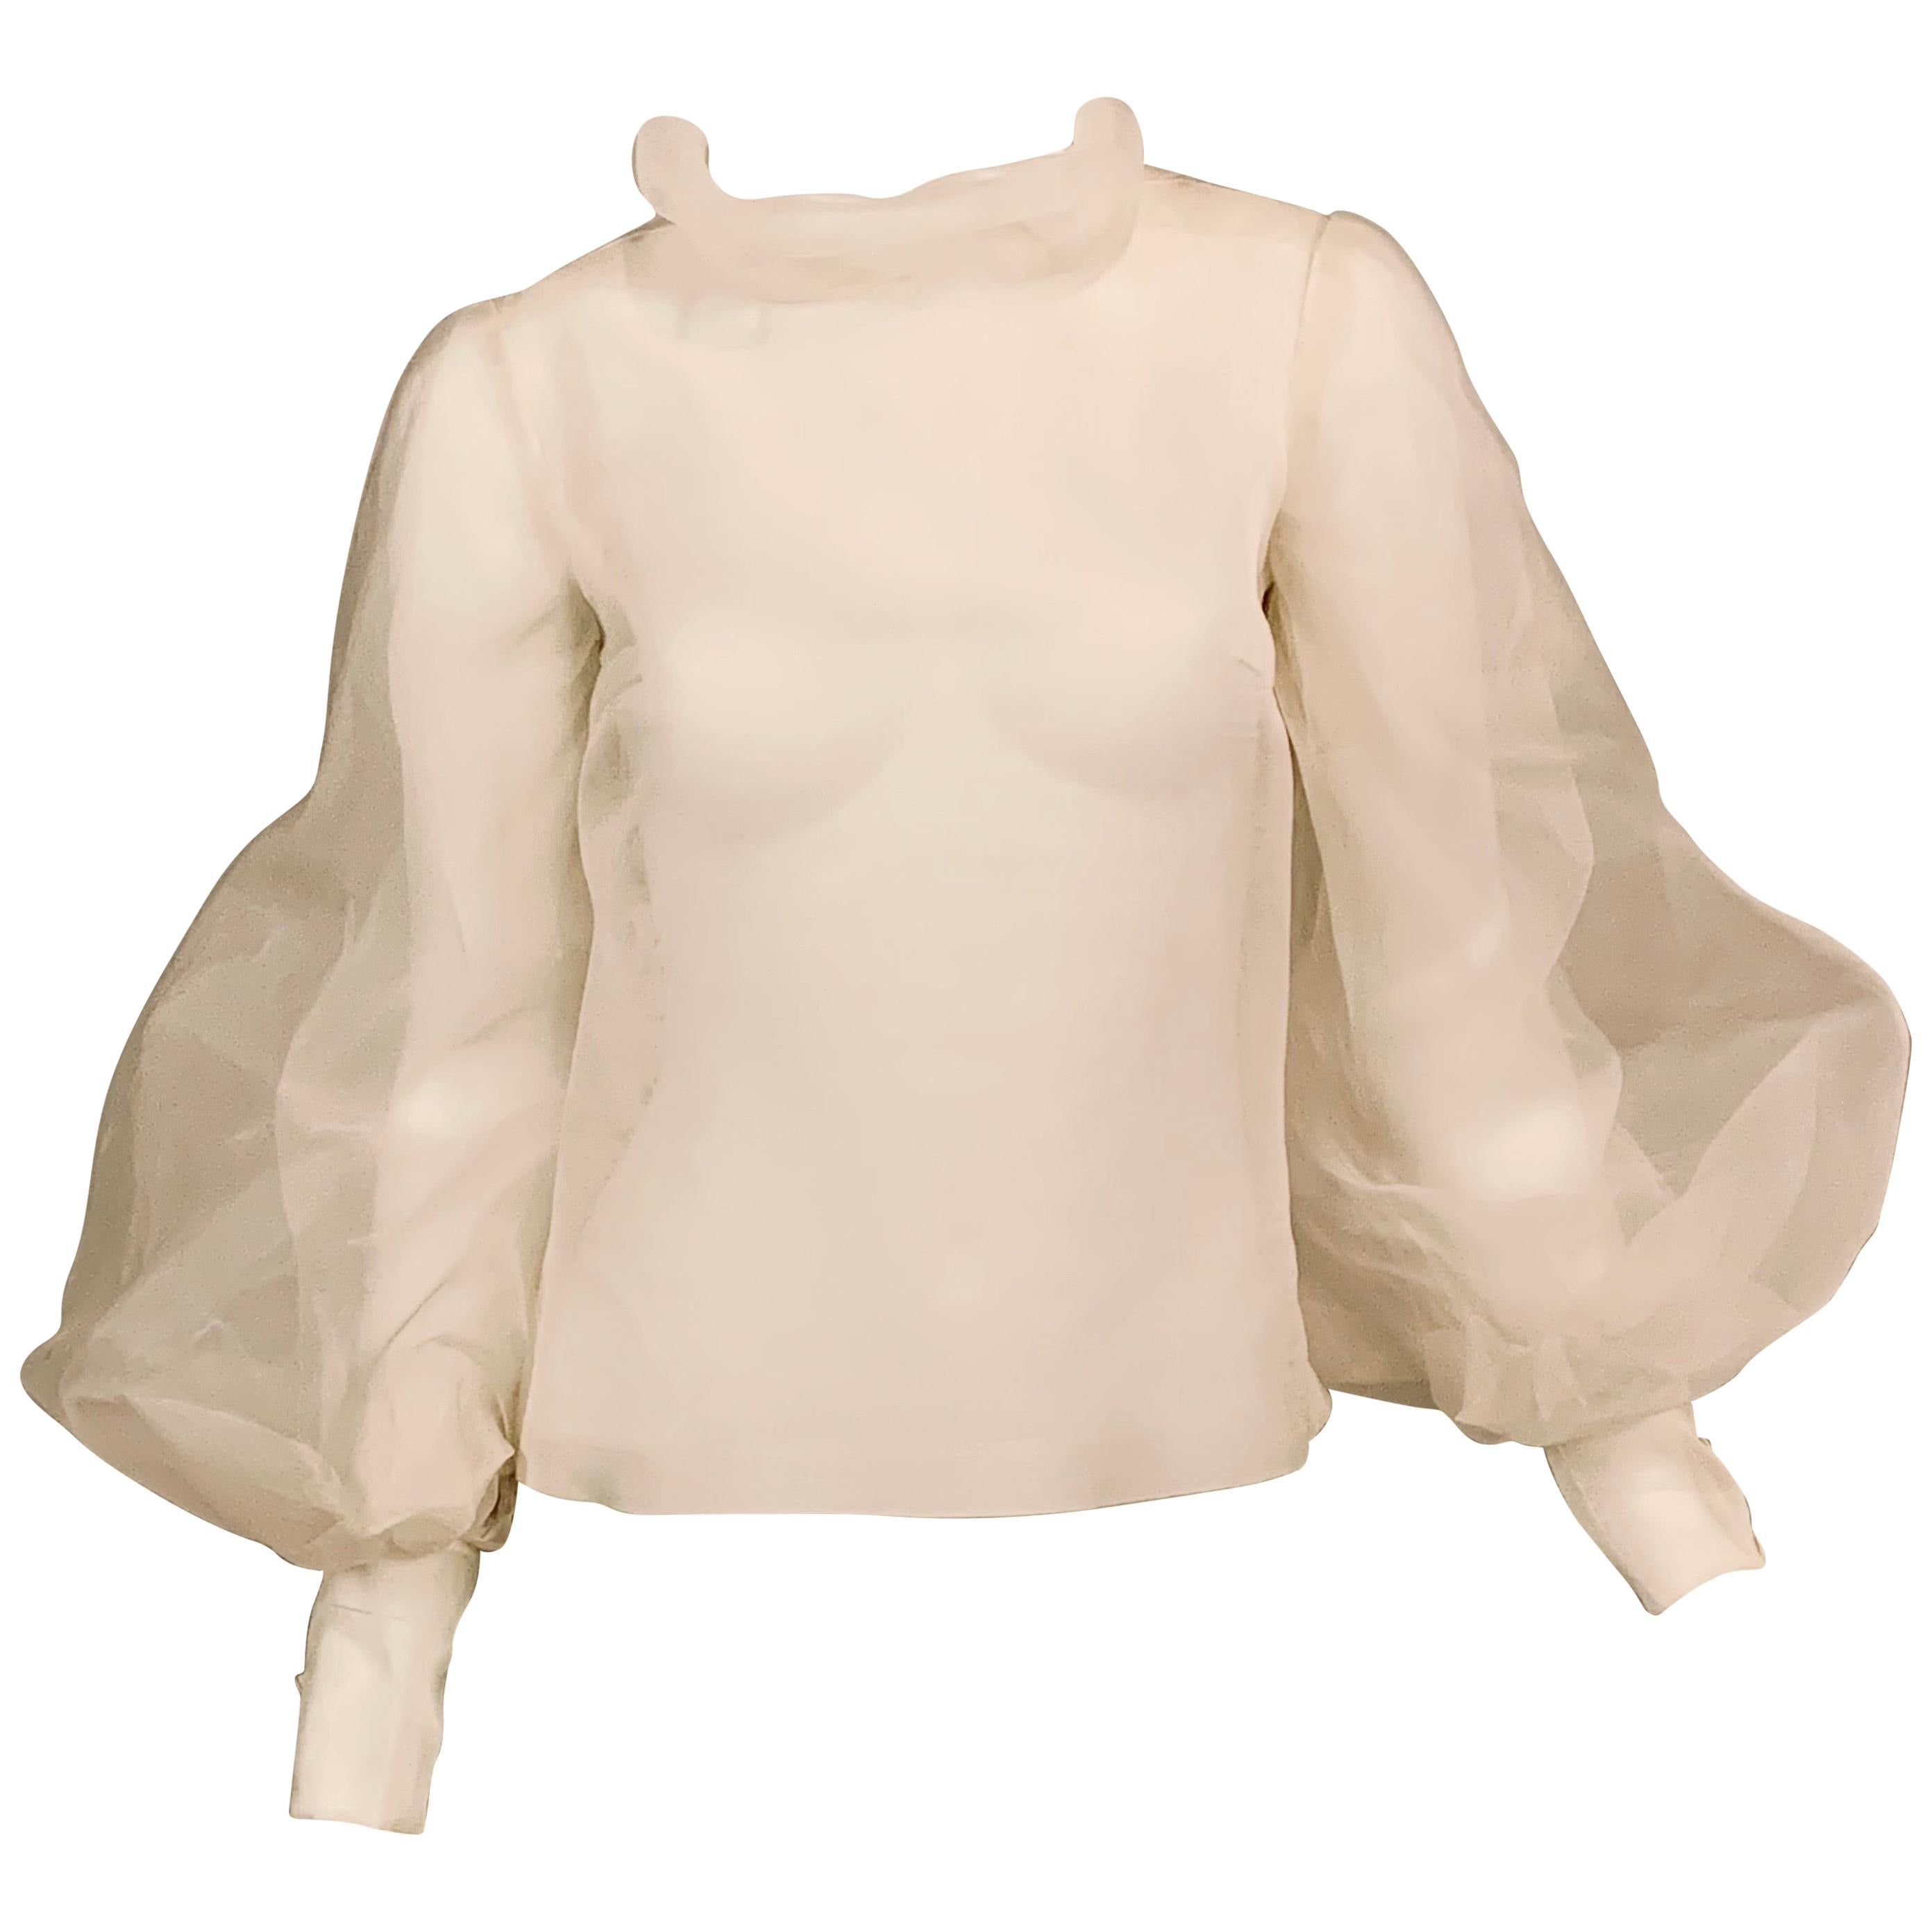 Sybil Connolly Couture Sheer White Silk Organza Blouse with Very Full Sleeves